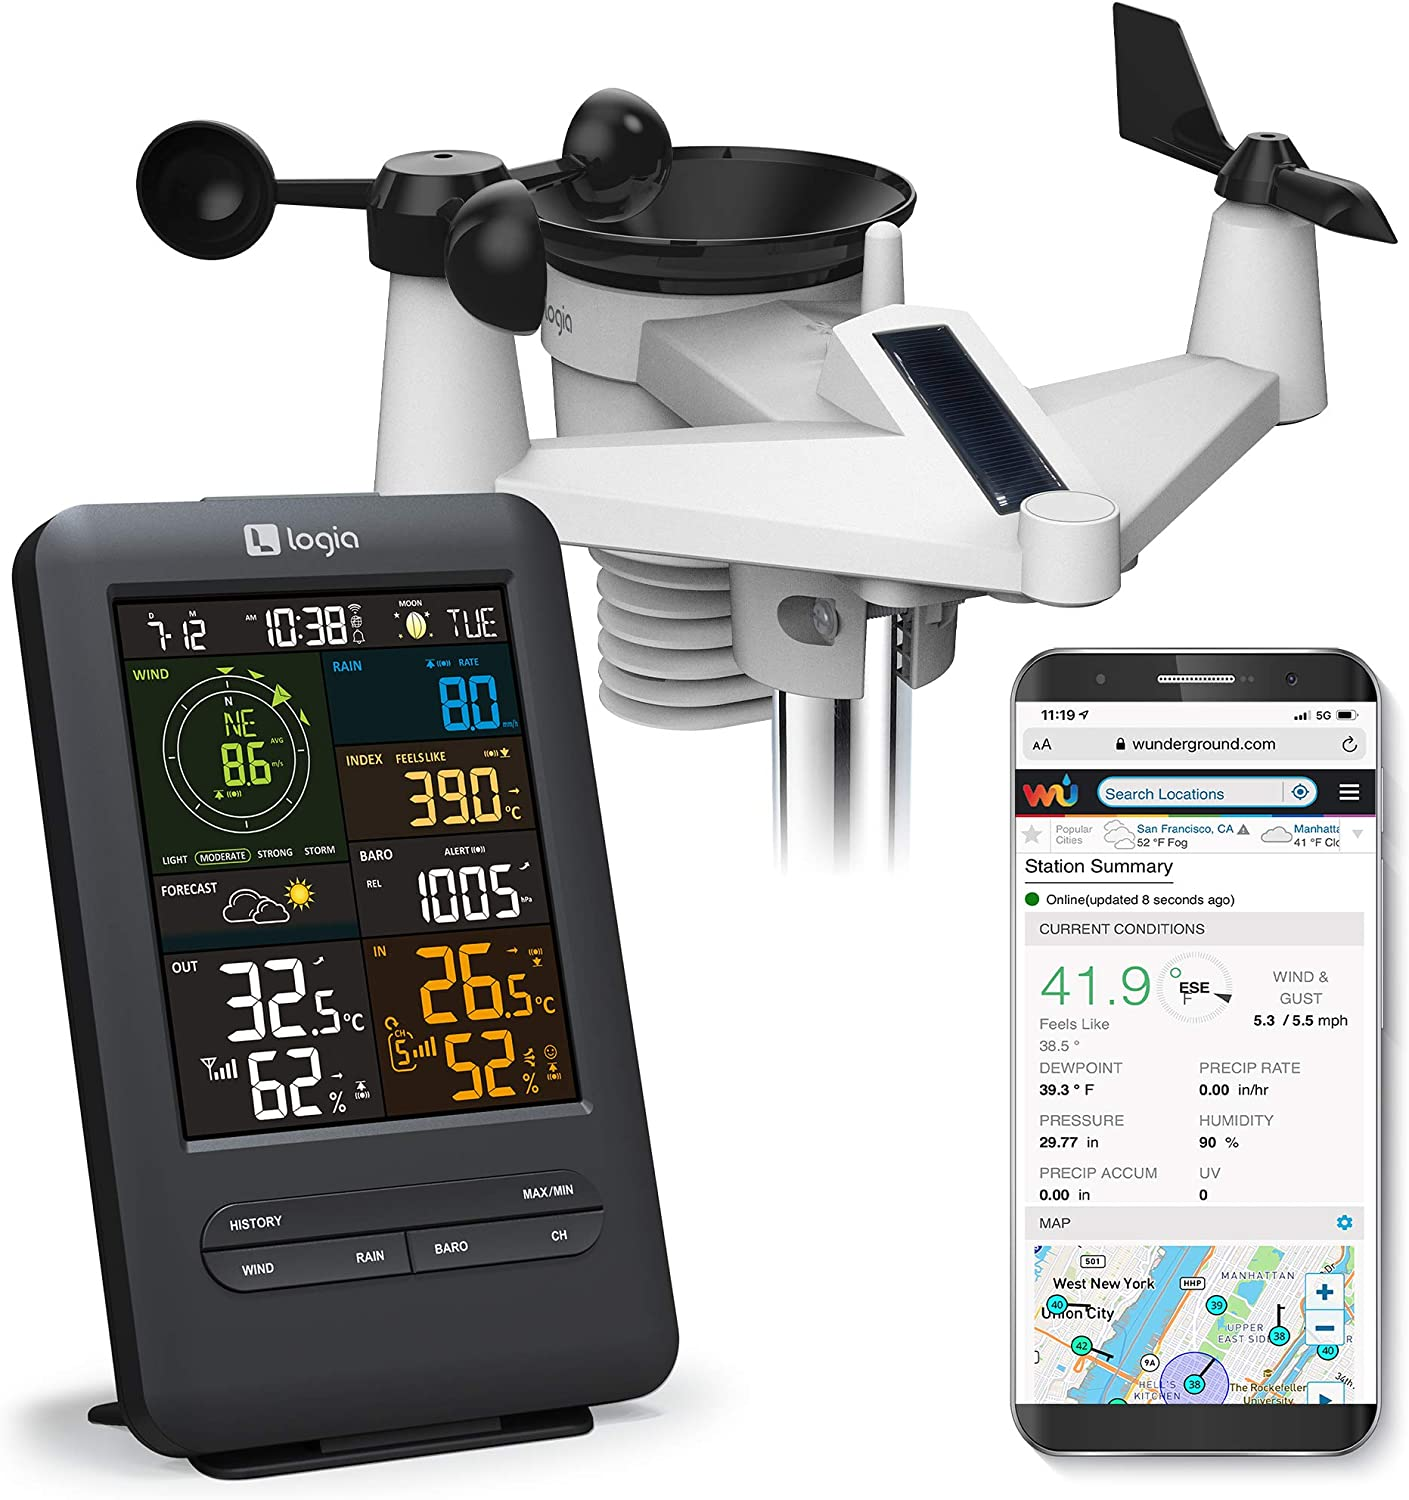 Logia 5-in-1 Wi-Fi Weather Station with Solar | Indoor/Outdoor Remote Monitoring System, Temperature Humidity Wind Speed/Direction Rain & More, Wireless Color Console w/Forecast Data, Alarm, Alerts